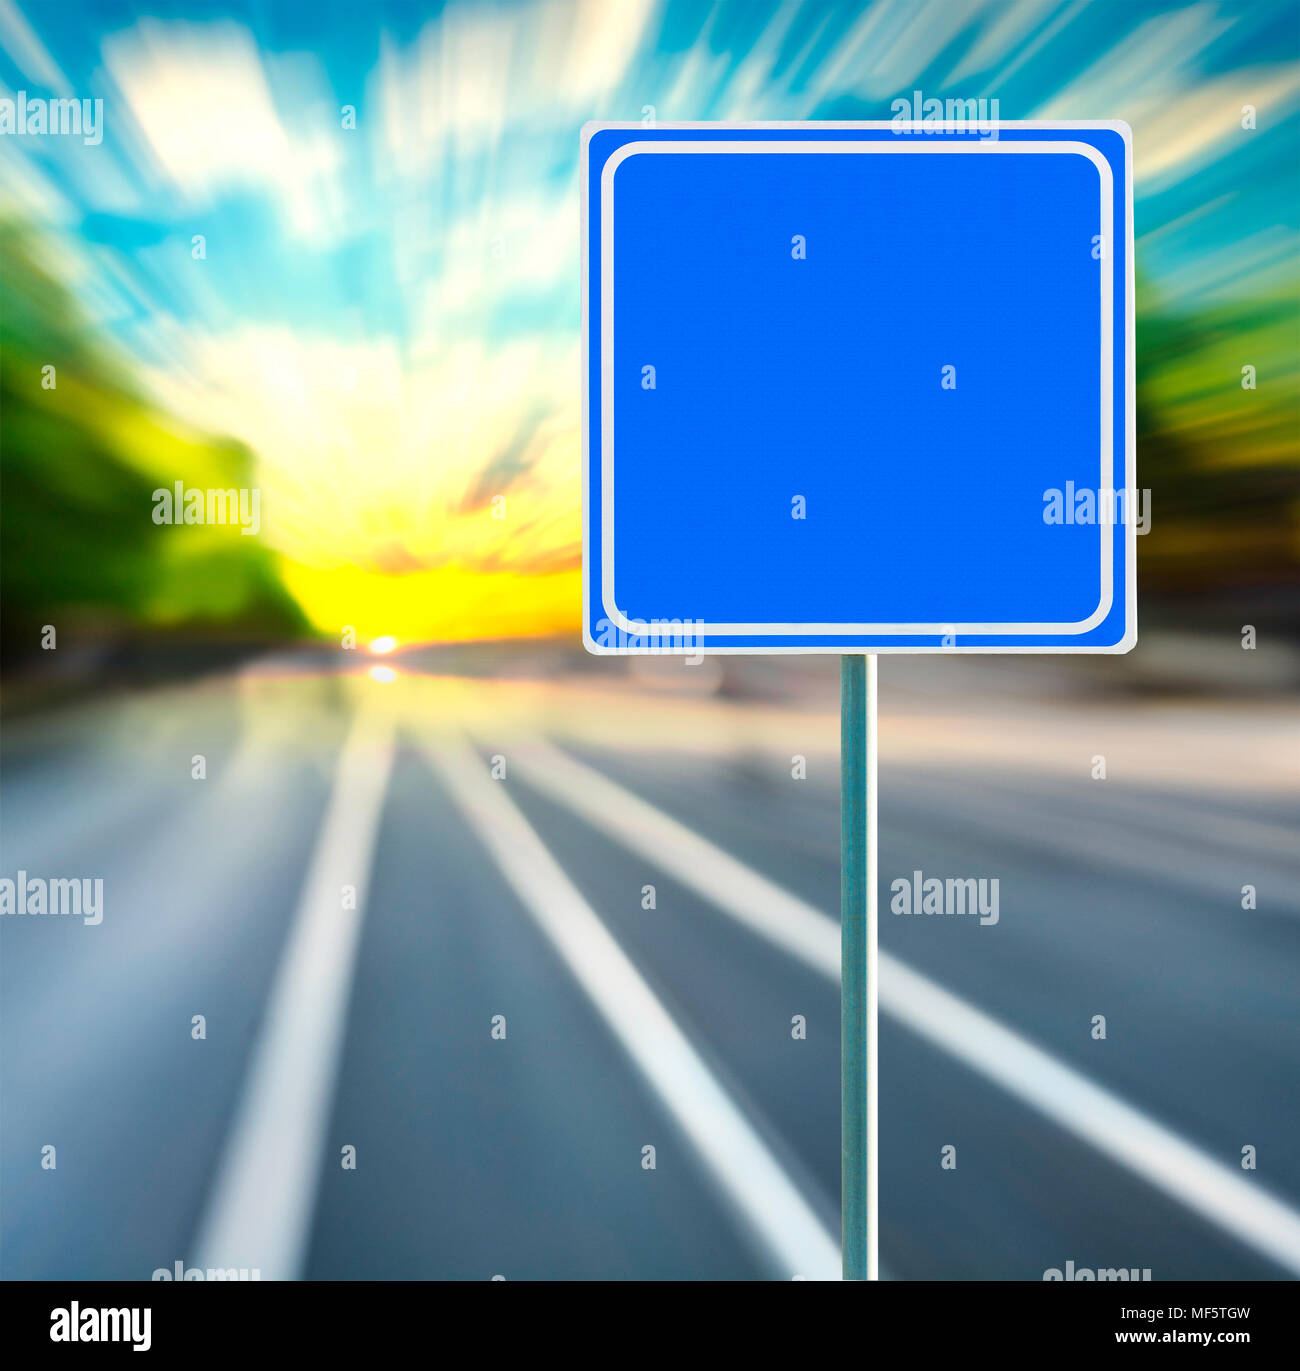 Template, blank, clean blue road sign with blurred speedy background in sunset. Copy space. Stock Photo